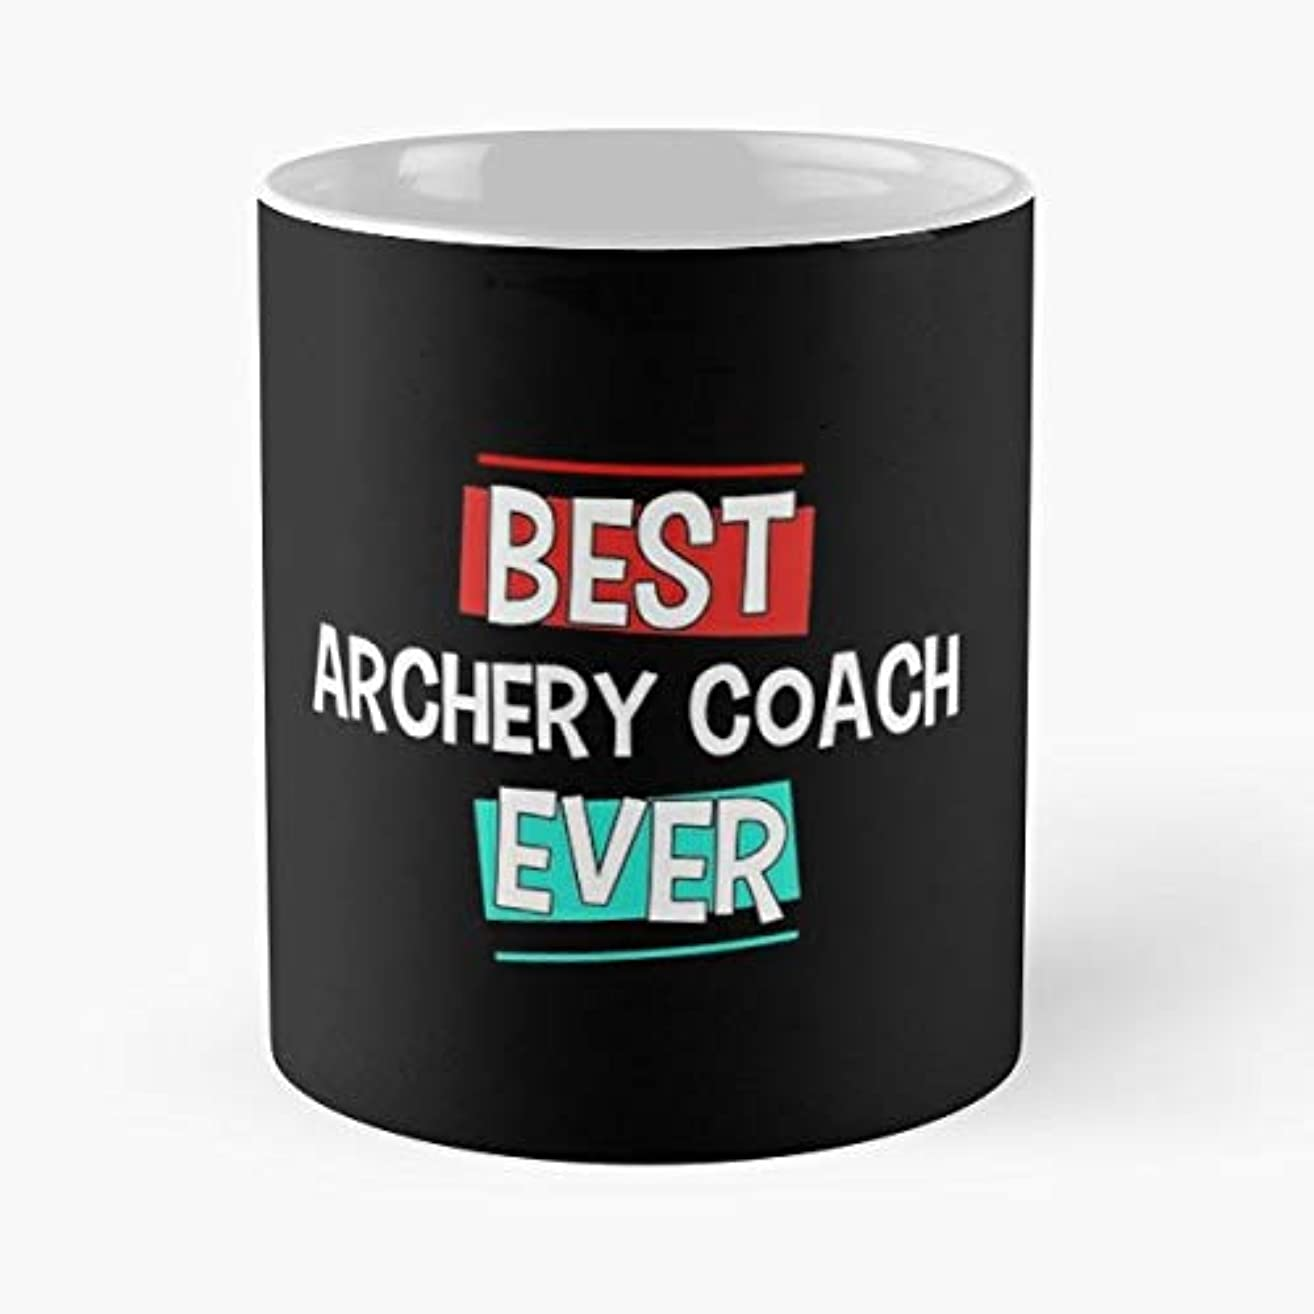 Archer Archery Coaching Coach - 11oz Novetly Ceramic Cups, Unique Birthday And Holiday Gifts For Mom Mother Wife Women.